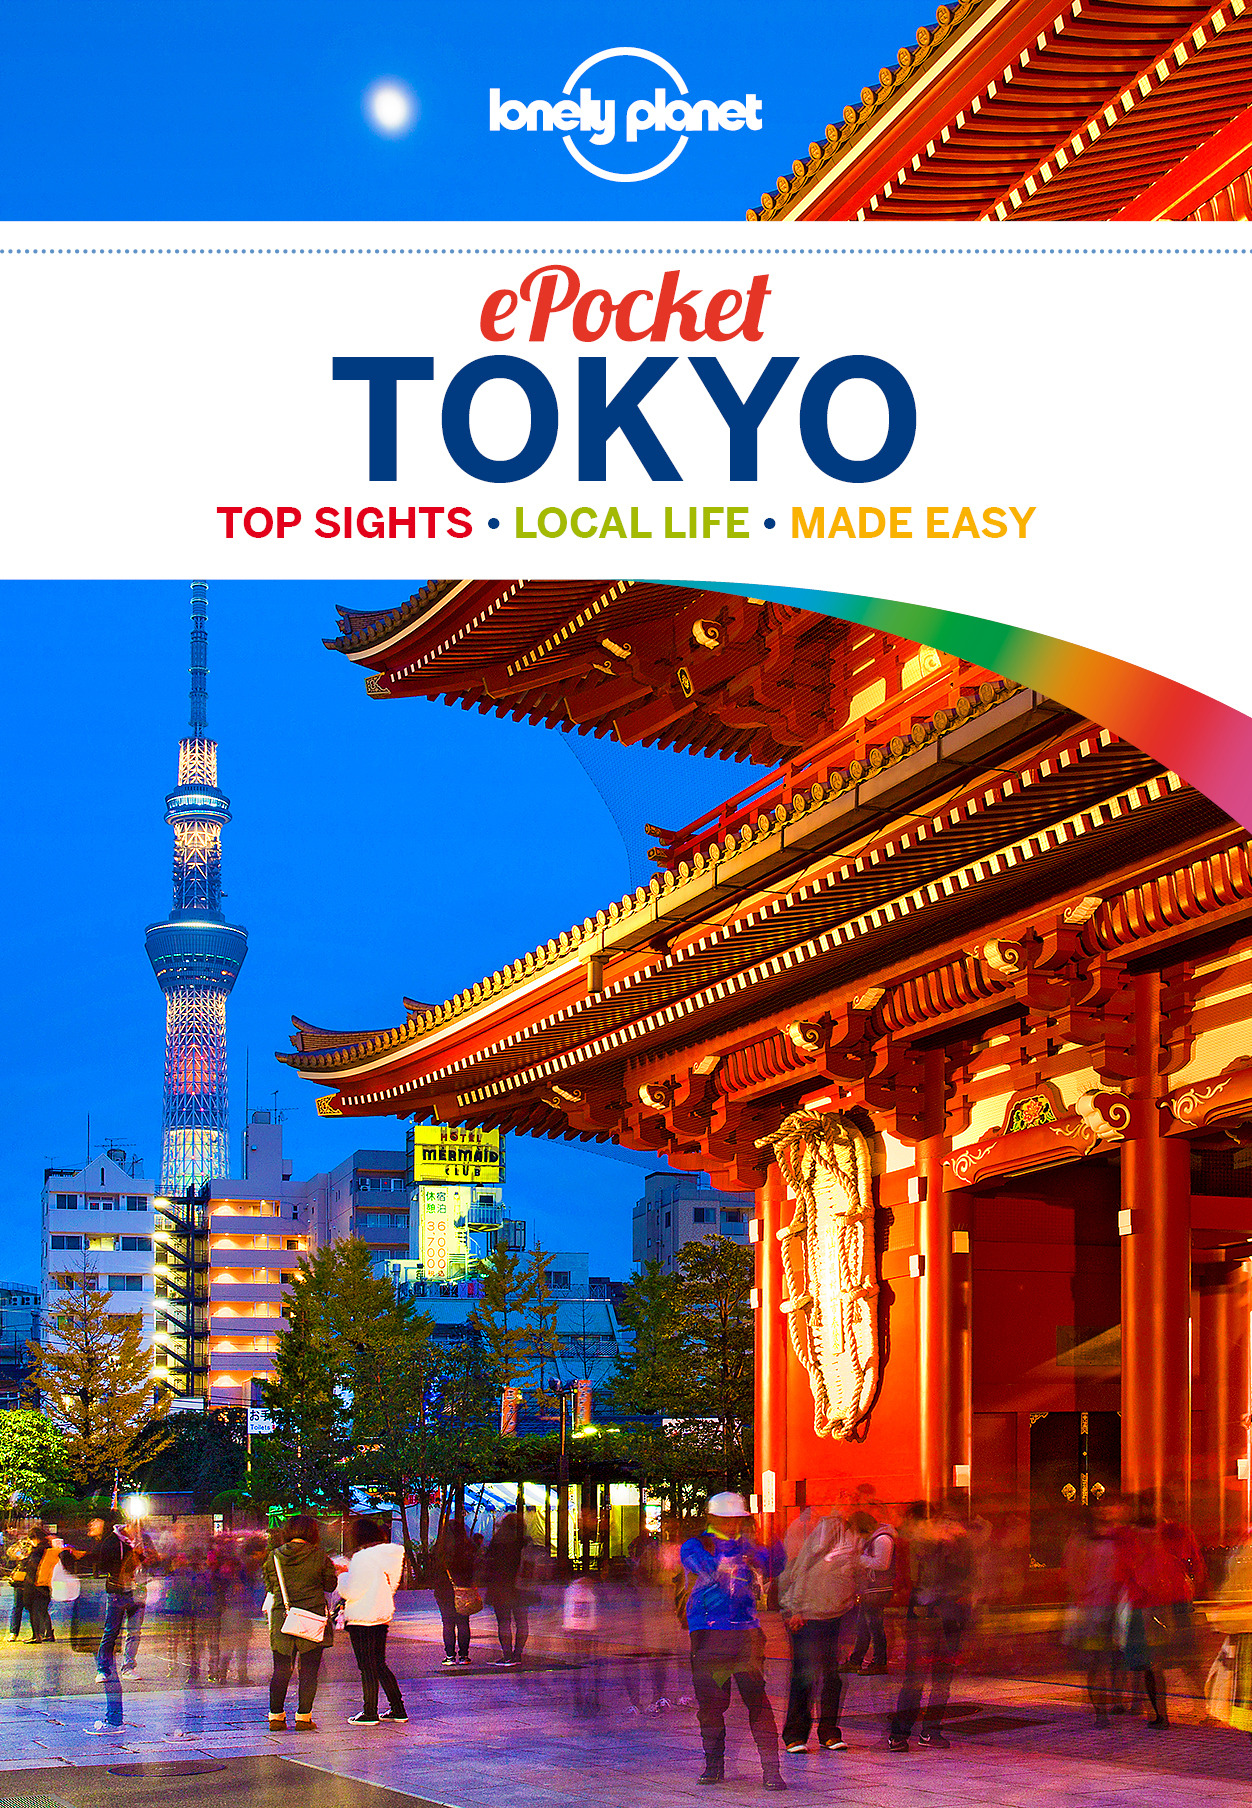 Planet, Lonely - Lonely Planet Pocket Tokyo, ebook